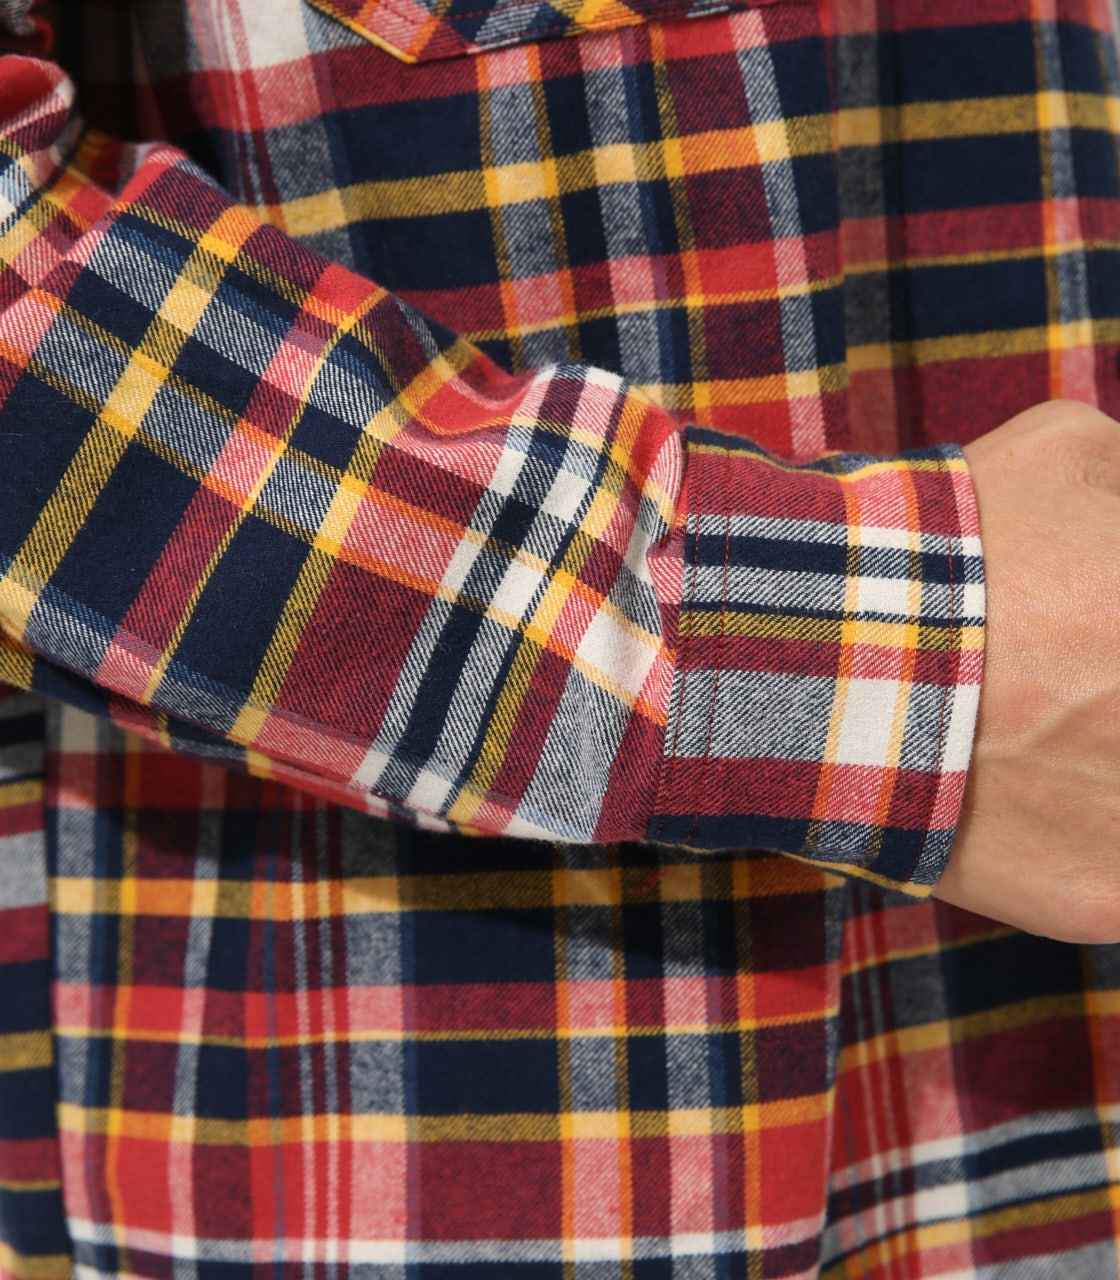 【AZUL BY MOUSSY】DENIM COLLAR BIG CHECK SHIRT 詳細画像 柄RED 9